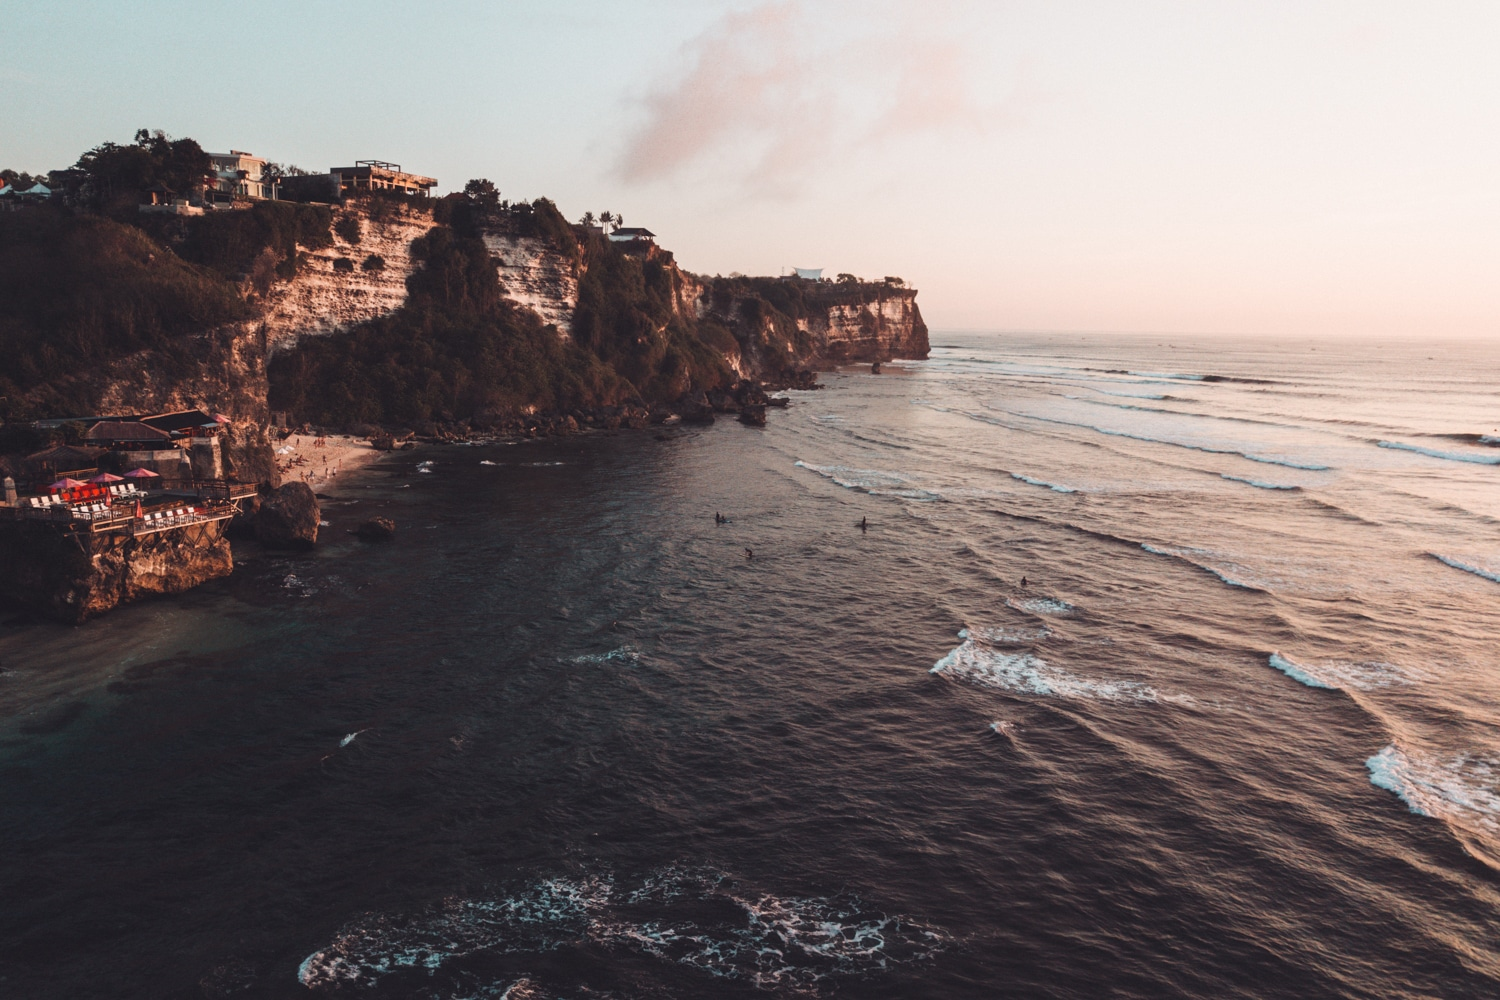 10 REASONS TO VISIT ULUWATU